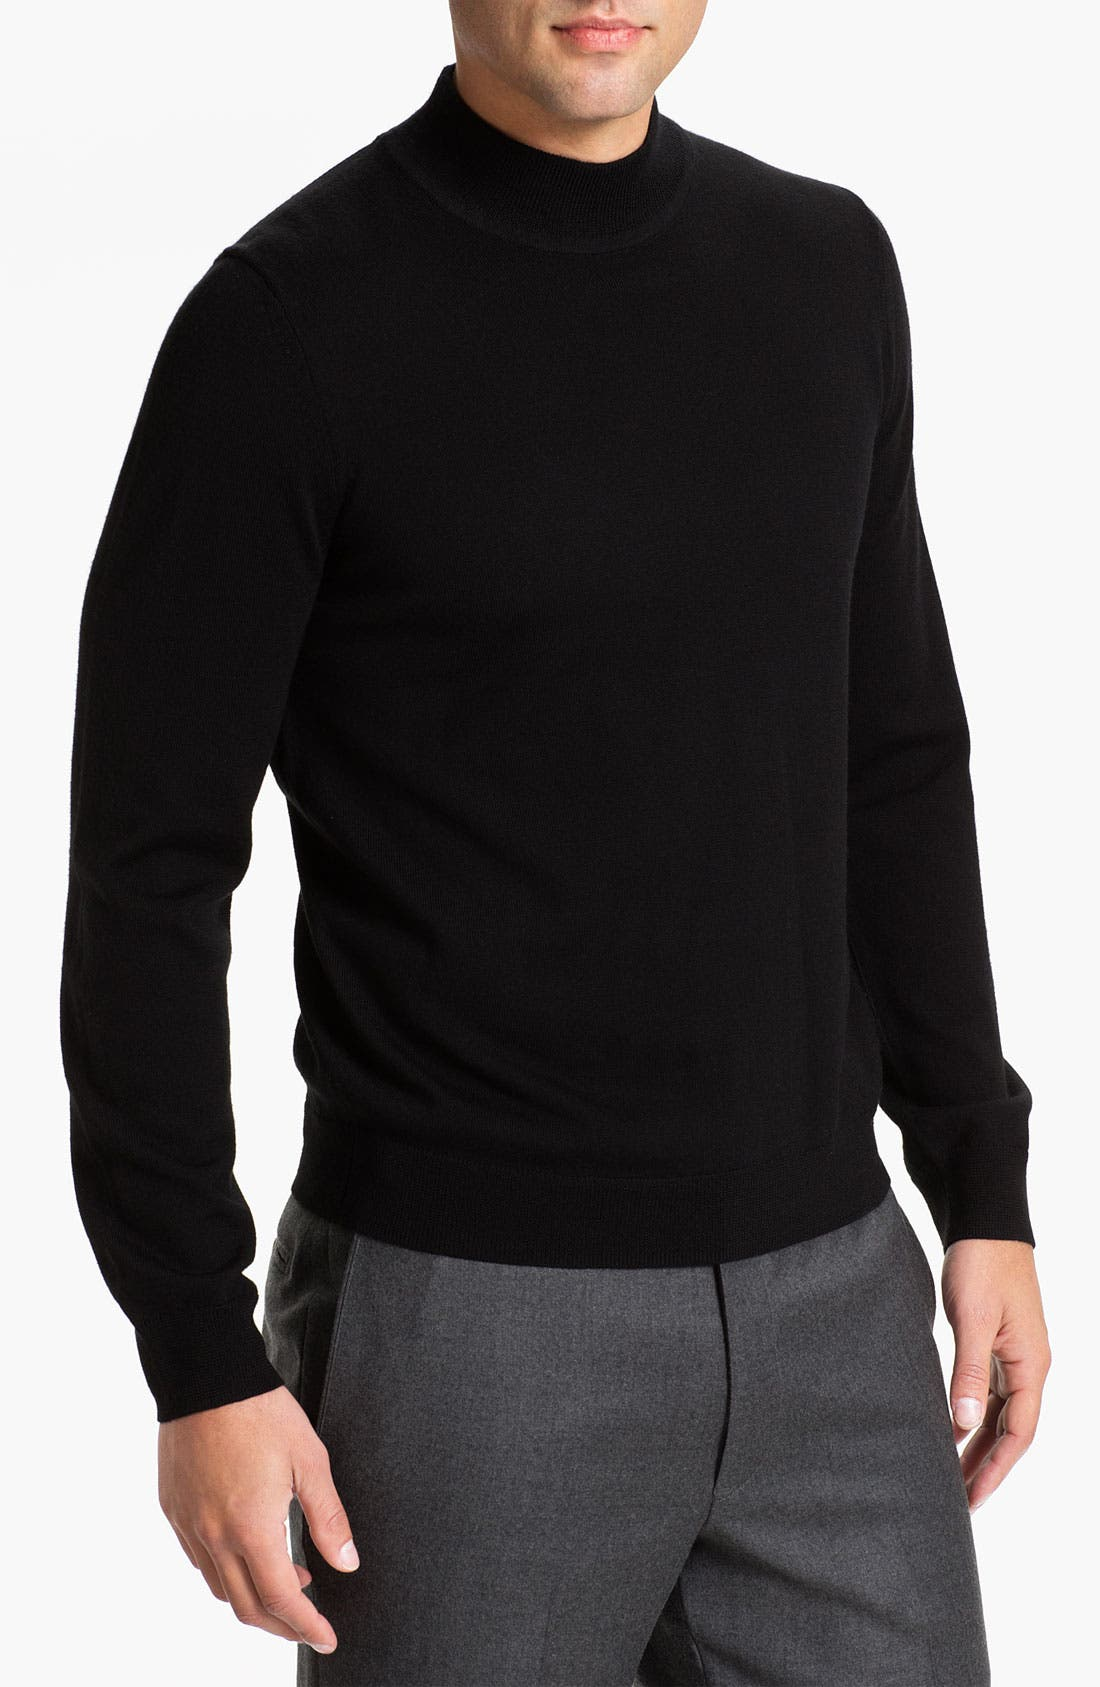 Main Image - Nordstrom Mock Neck Merino Wool Sweater